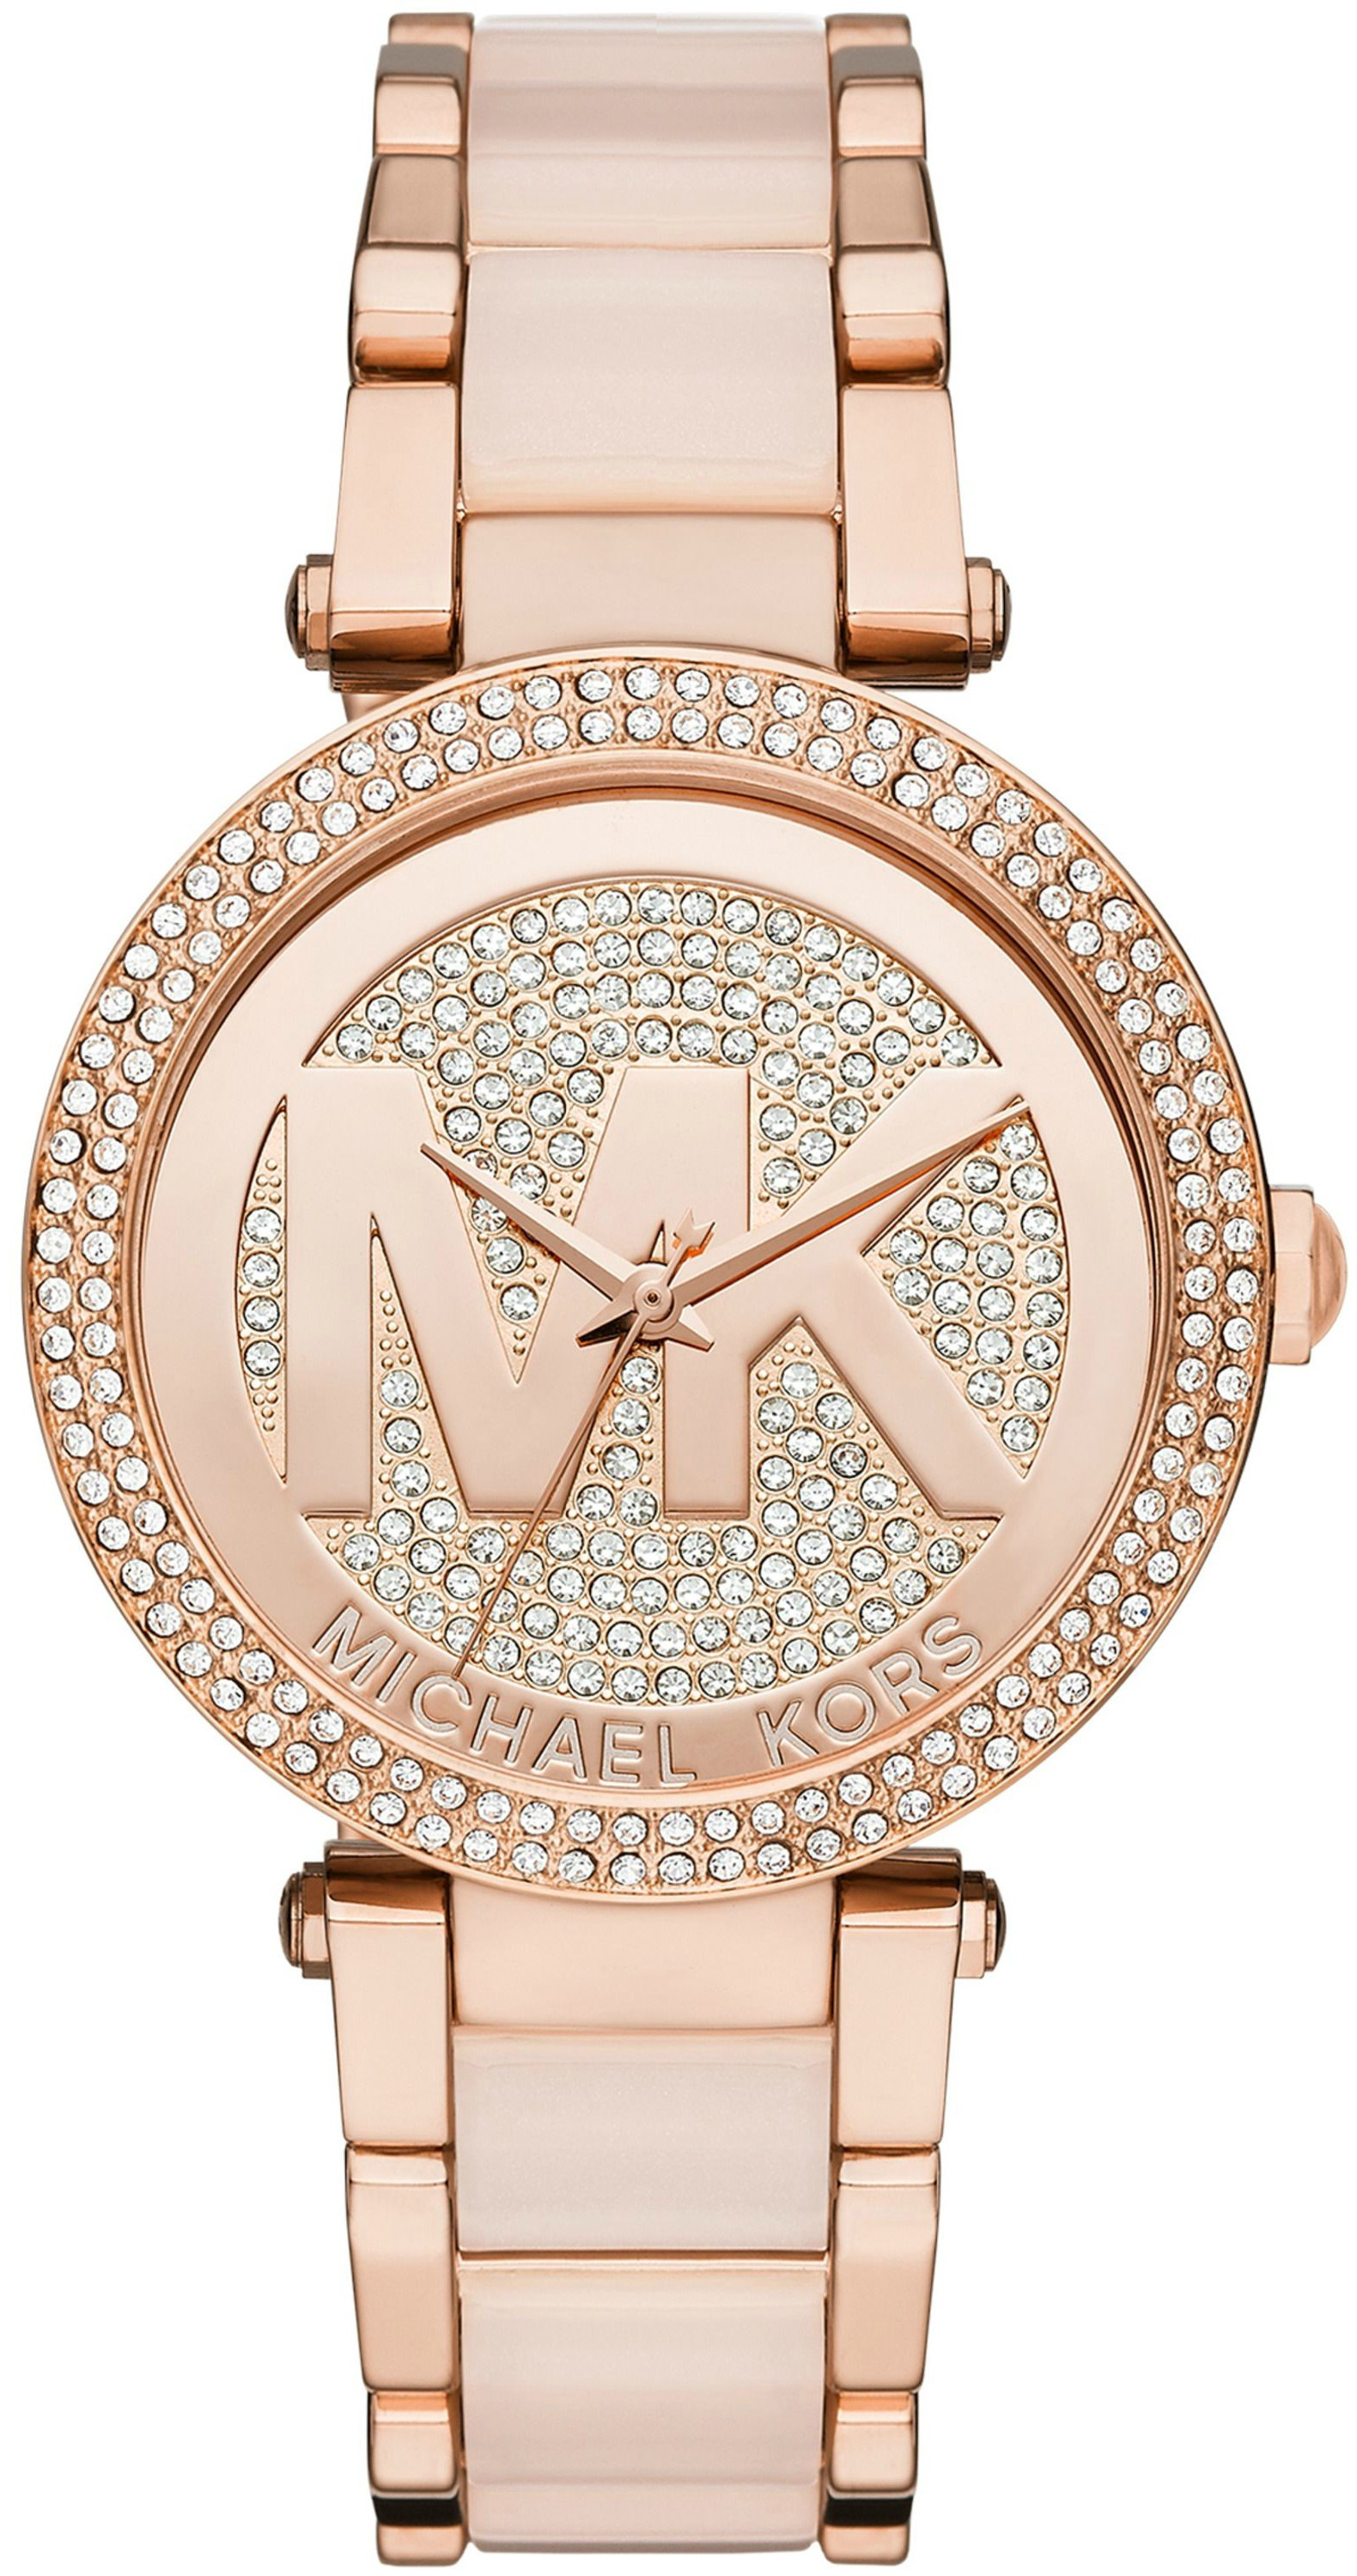 56a0e8ddfb5c Michael Kors Women s Parker Two-Tone Watch MK6176